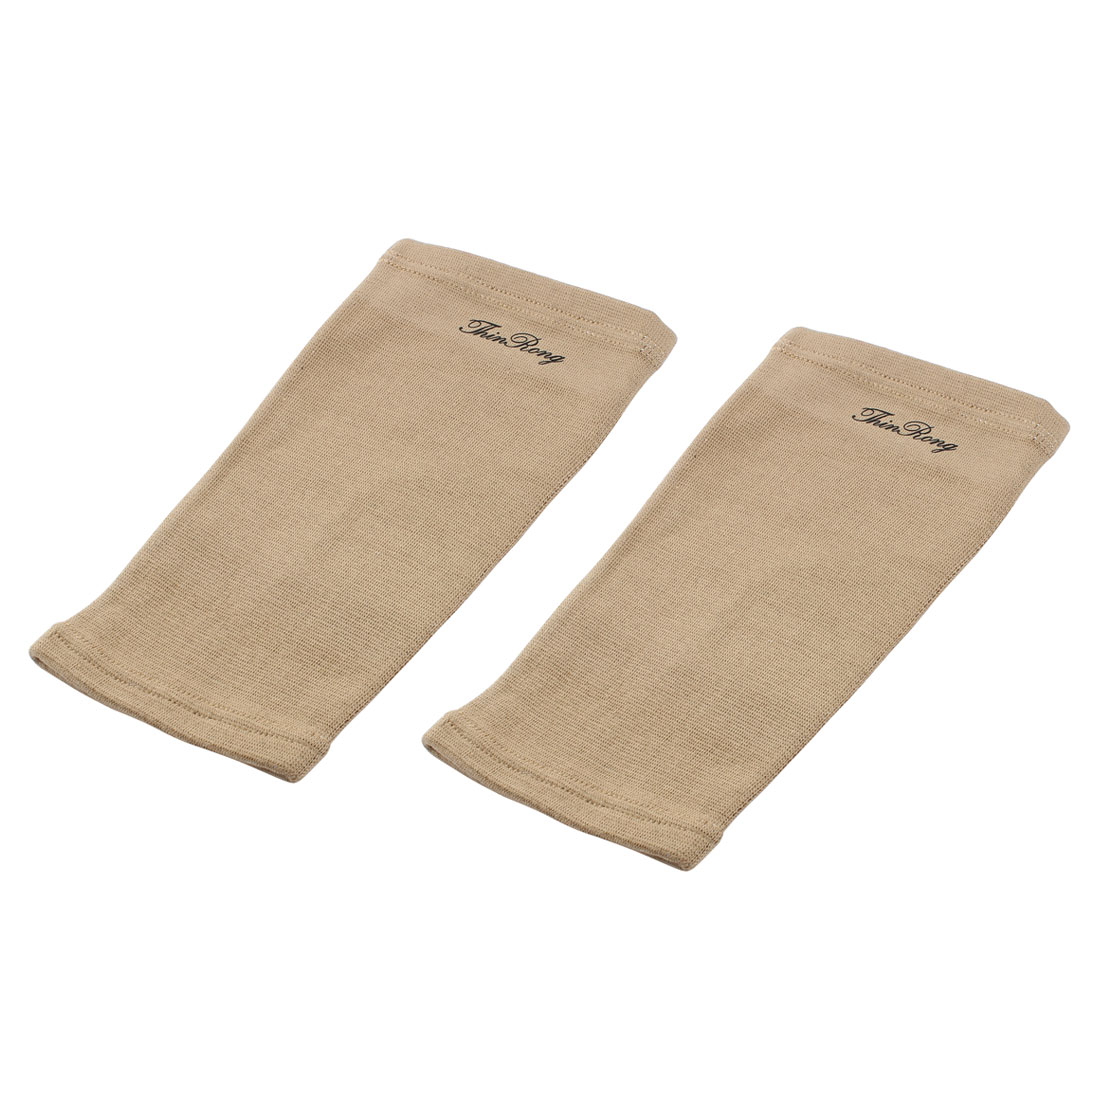 Sport Exercise Elastic Brace Knee Support Pad Guard Protector Bandage Khaki Pair